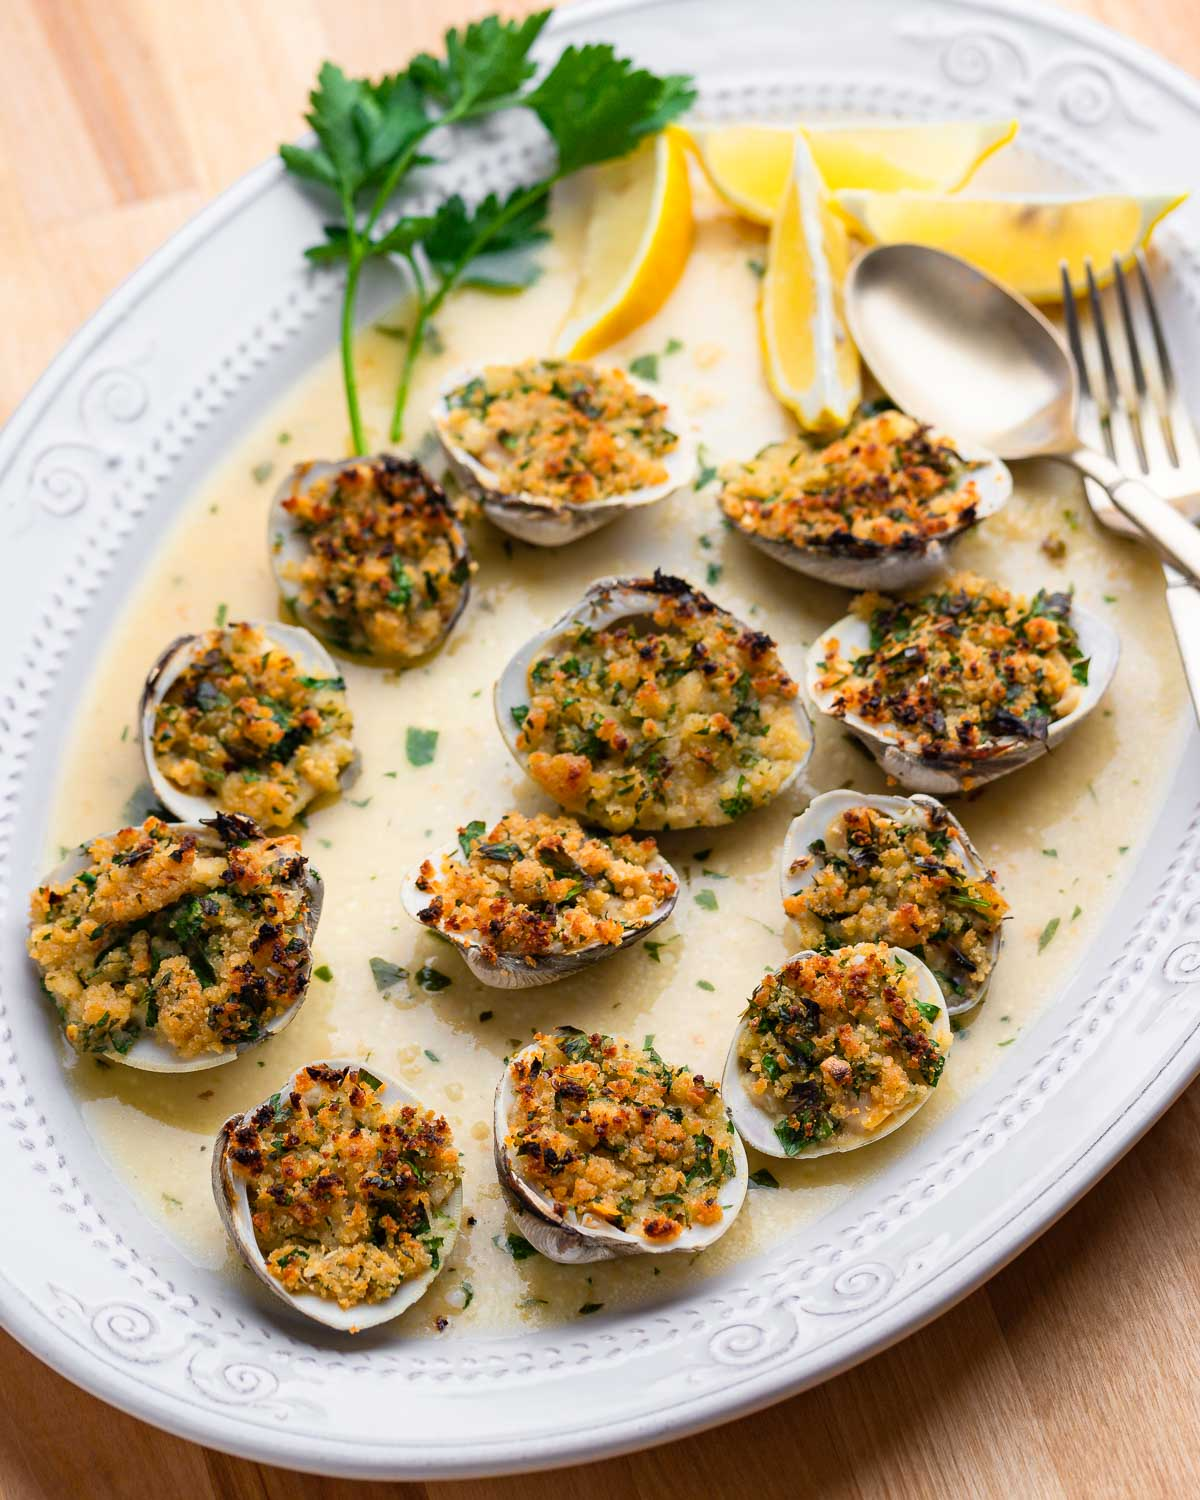 Full plate of cooked clams oreganata on wood table.